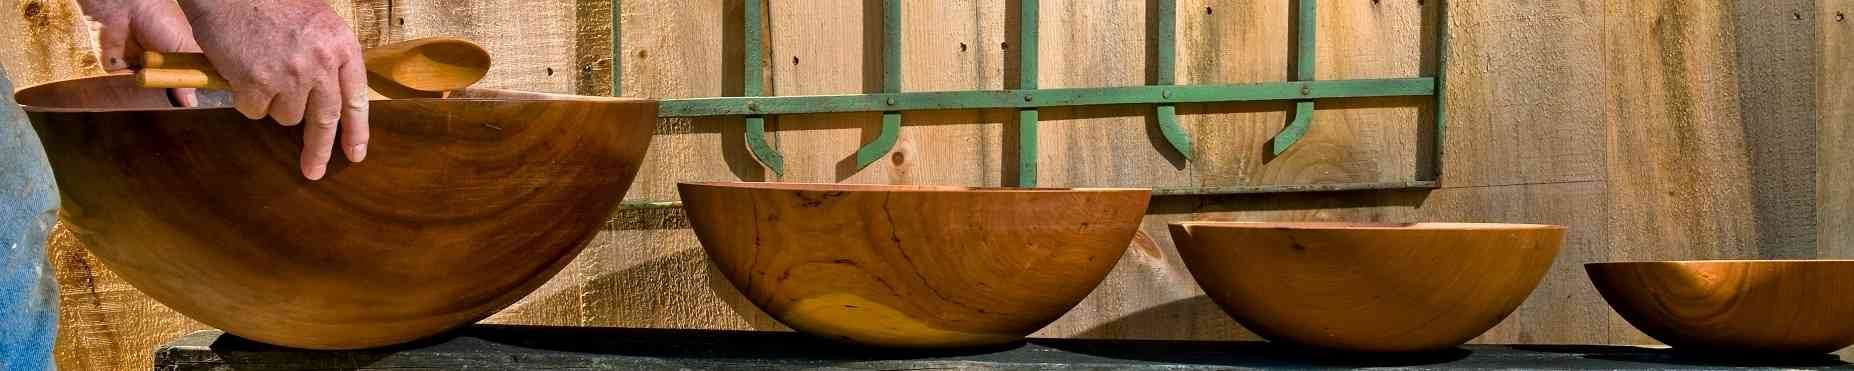 American-made wooden bowls